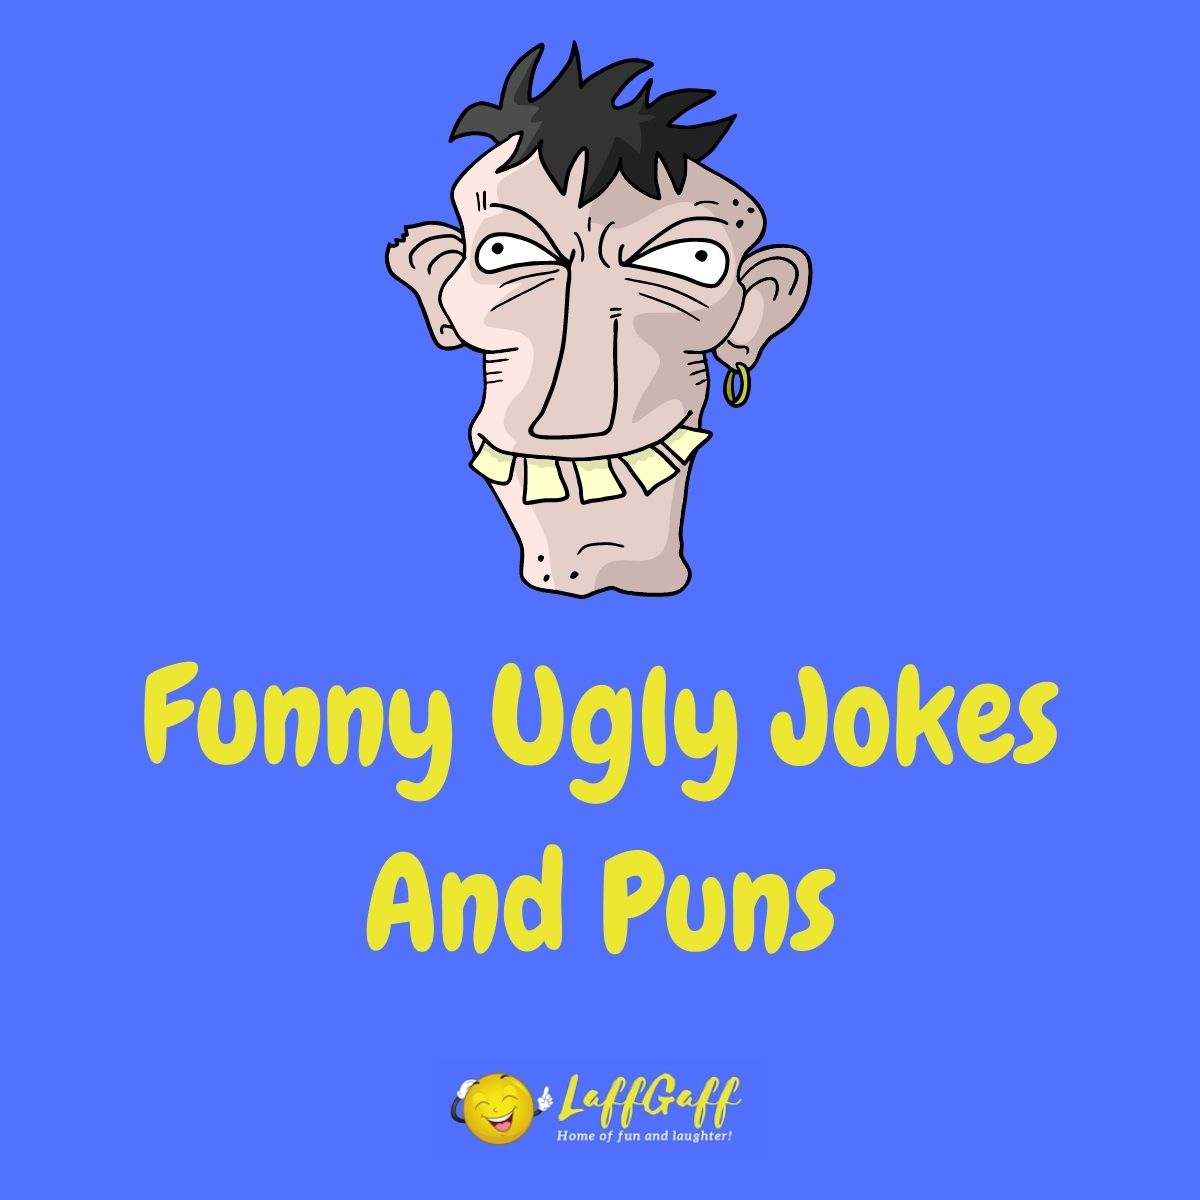 Featured image for a page of funny ugly jokes and puns.